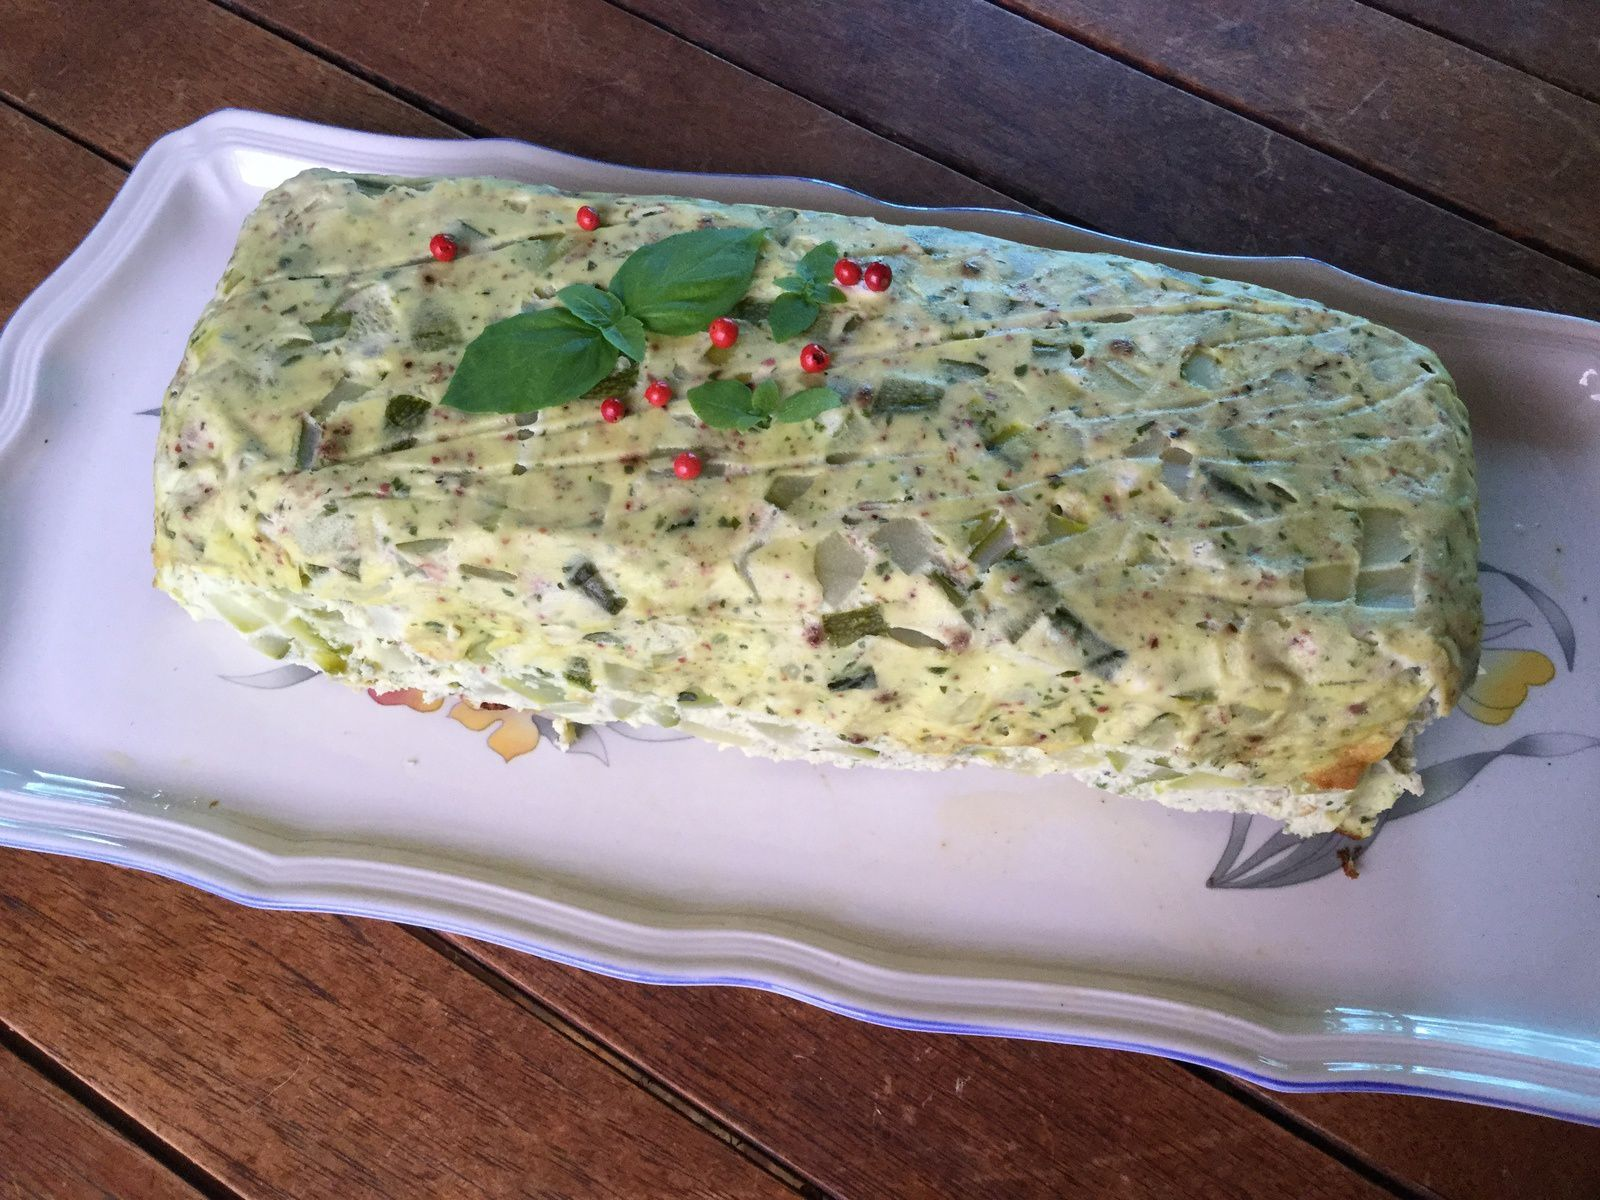 TERRINE DE COURGETTE AUX BAIES ROSES